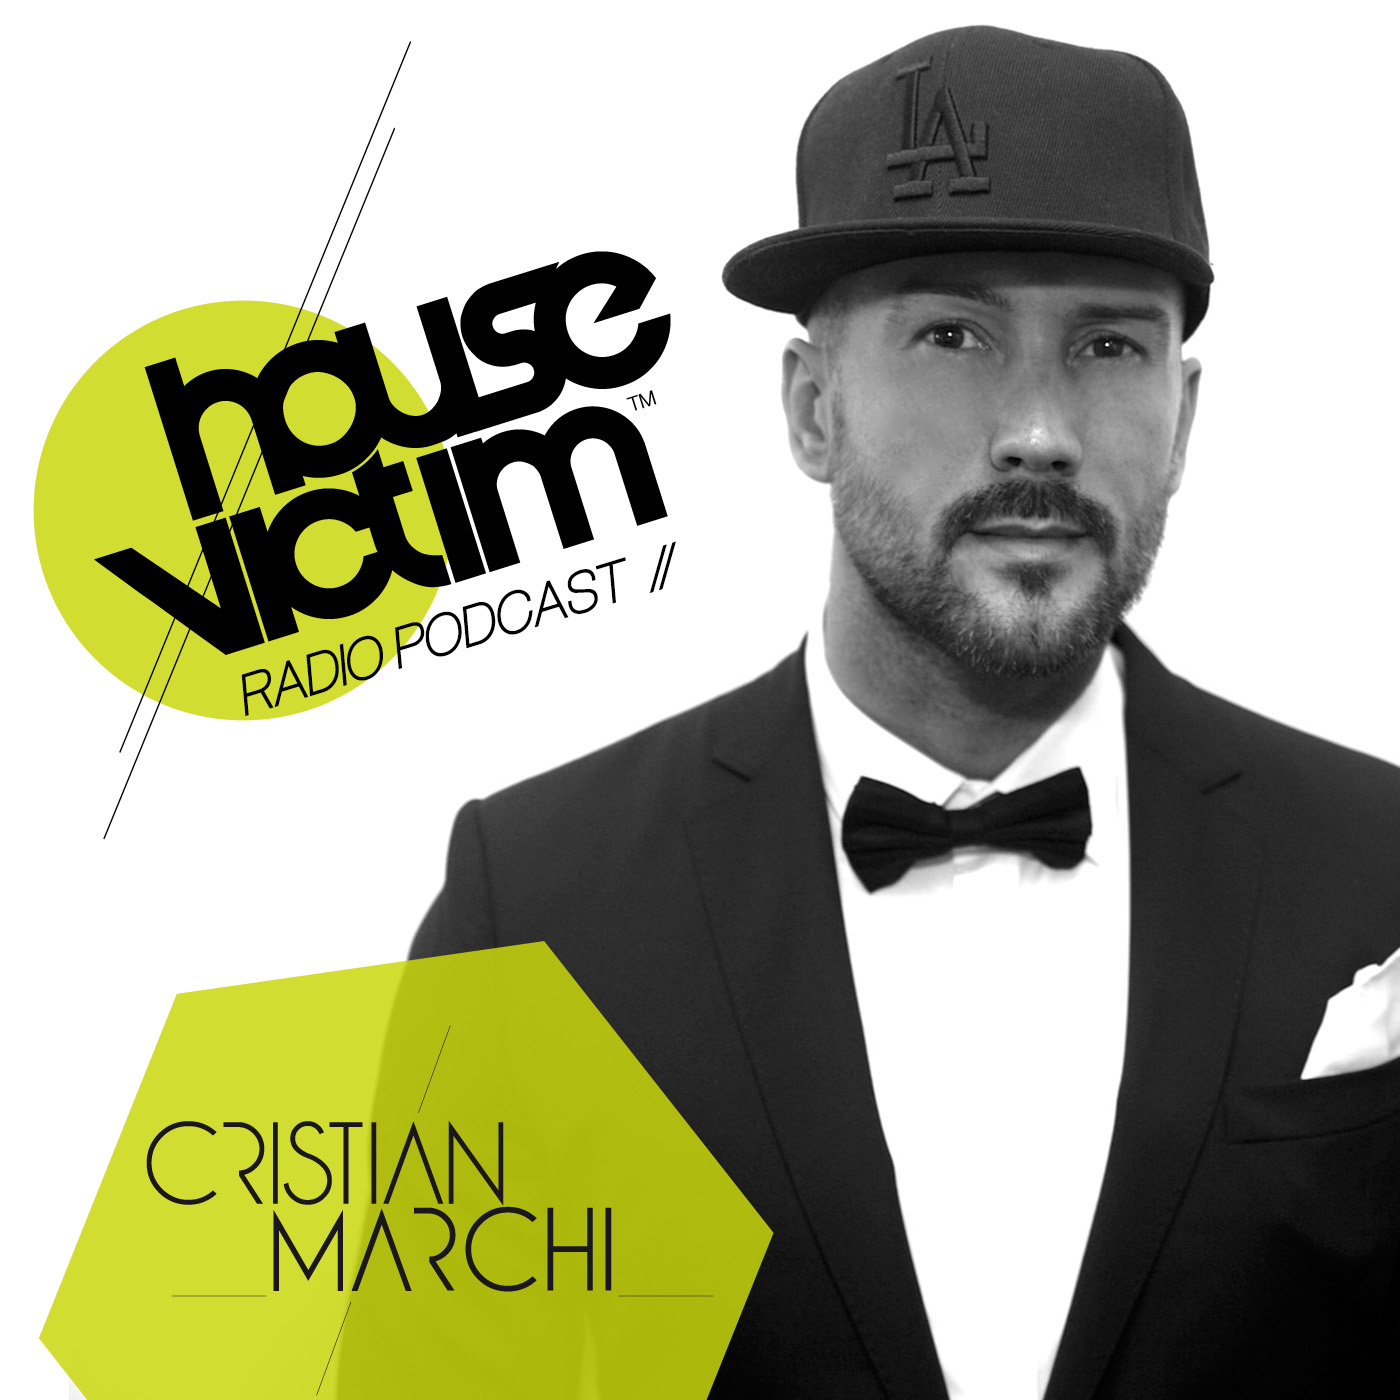 House Victim - Cristian Marchi Official Podcast